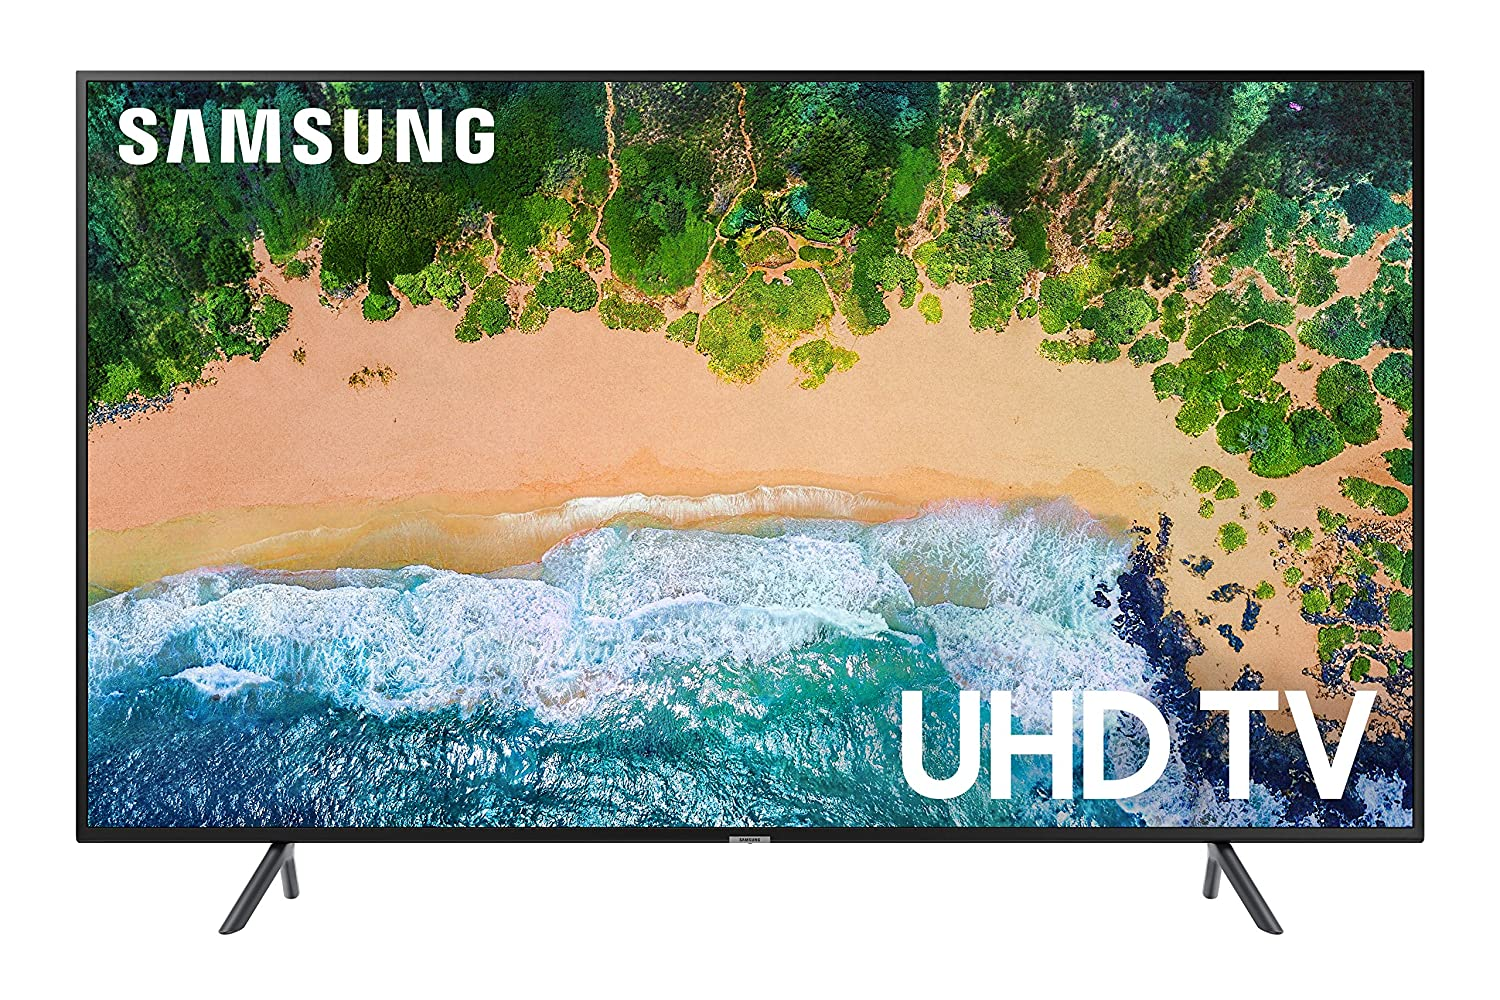 Samsung UN43NU7100FXZA Black Friday Deal 2019